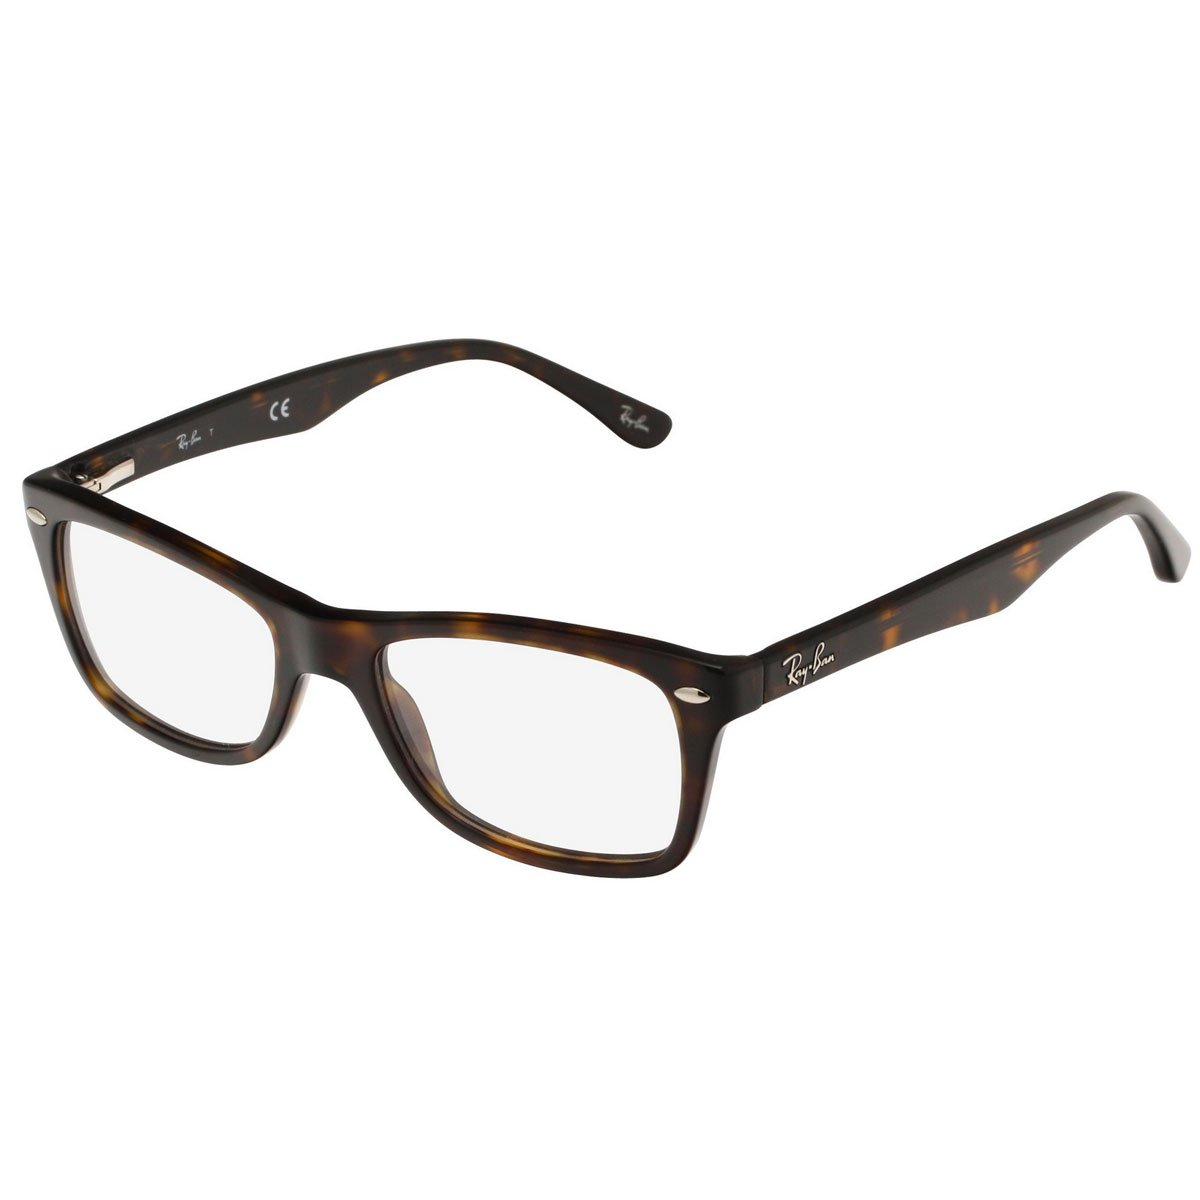 Ray-Ban Women's Rx5228 Square Eyeglasses,Dark Havana,50 mm by Ray-Ban